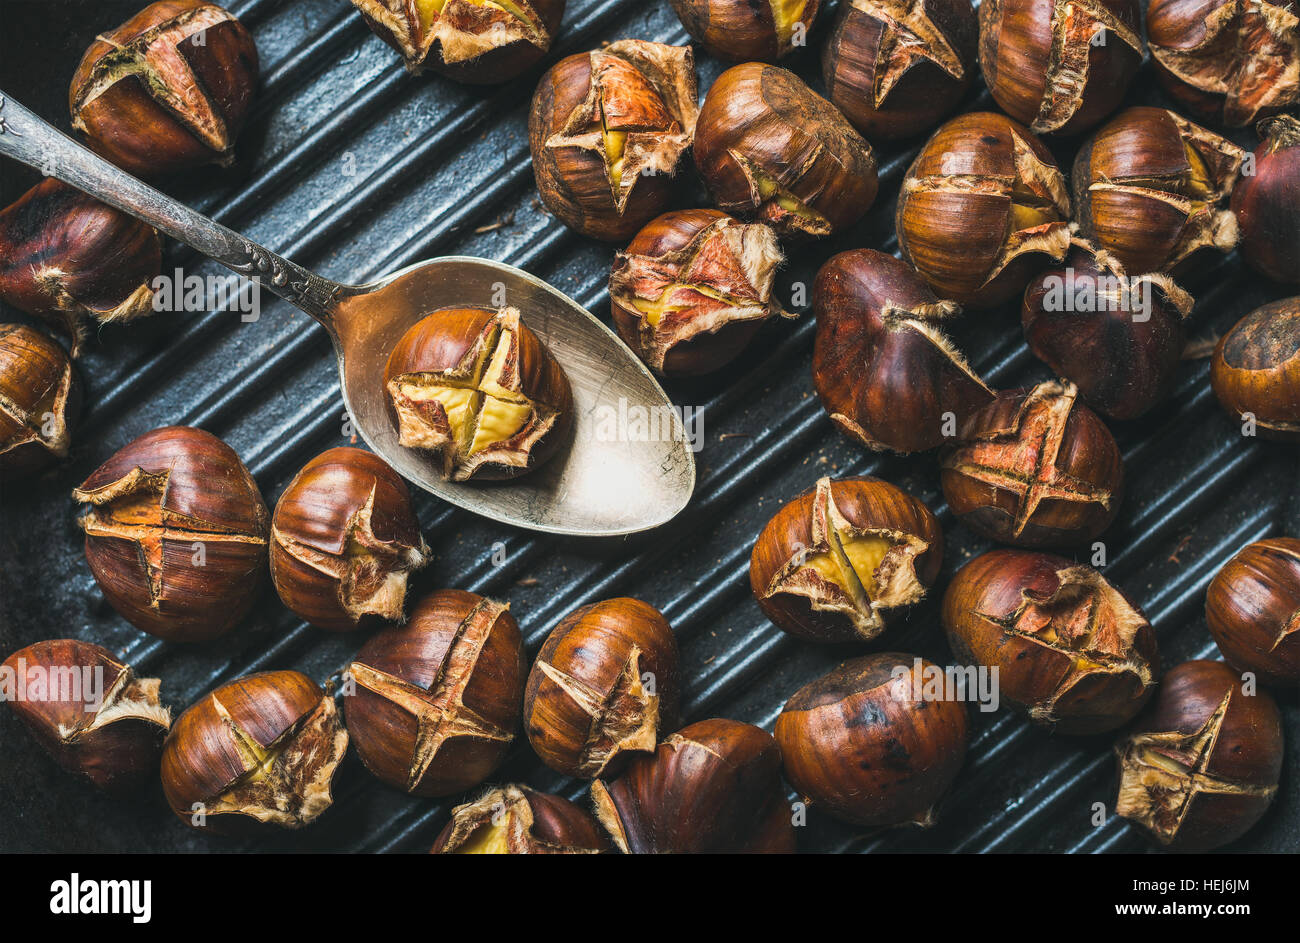 Close-up of roasted chestnuts and metal vintage spoon in pan - Stock Image